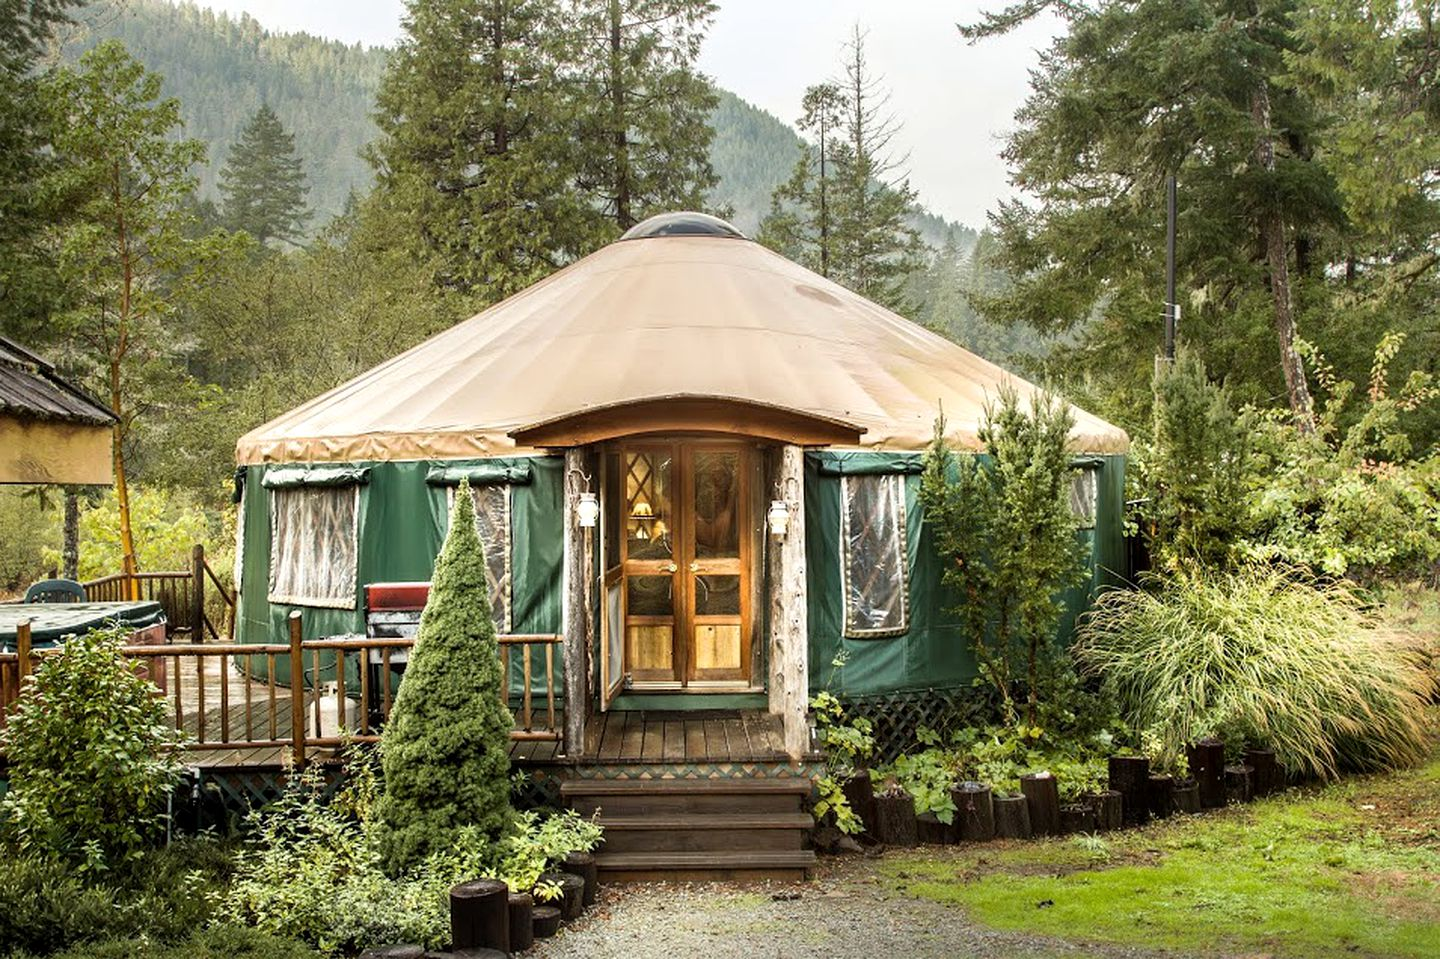 Luxury Yurt Northern California Luxury glamping nestled in the mountains. spacious pet friendly yurt in smith river national recreation area northern california